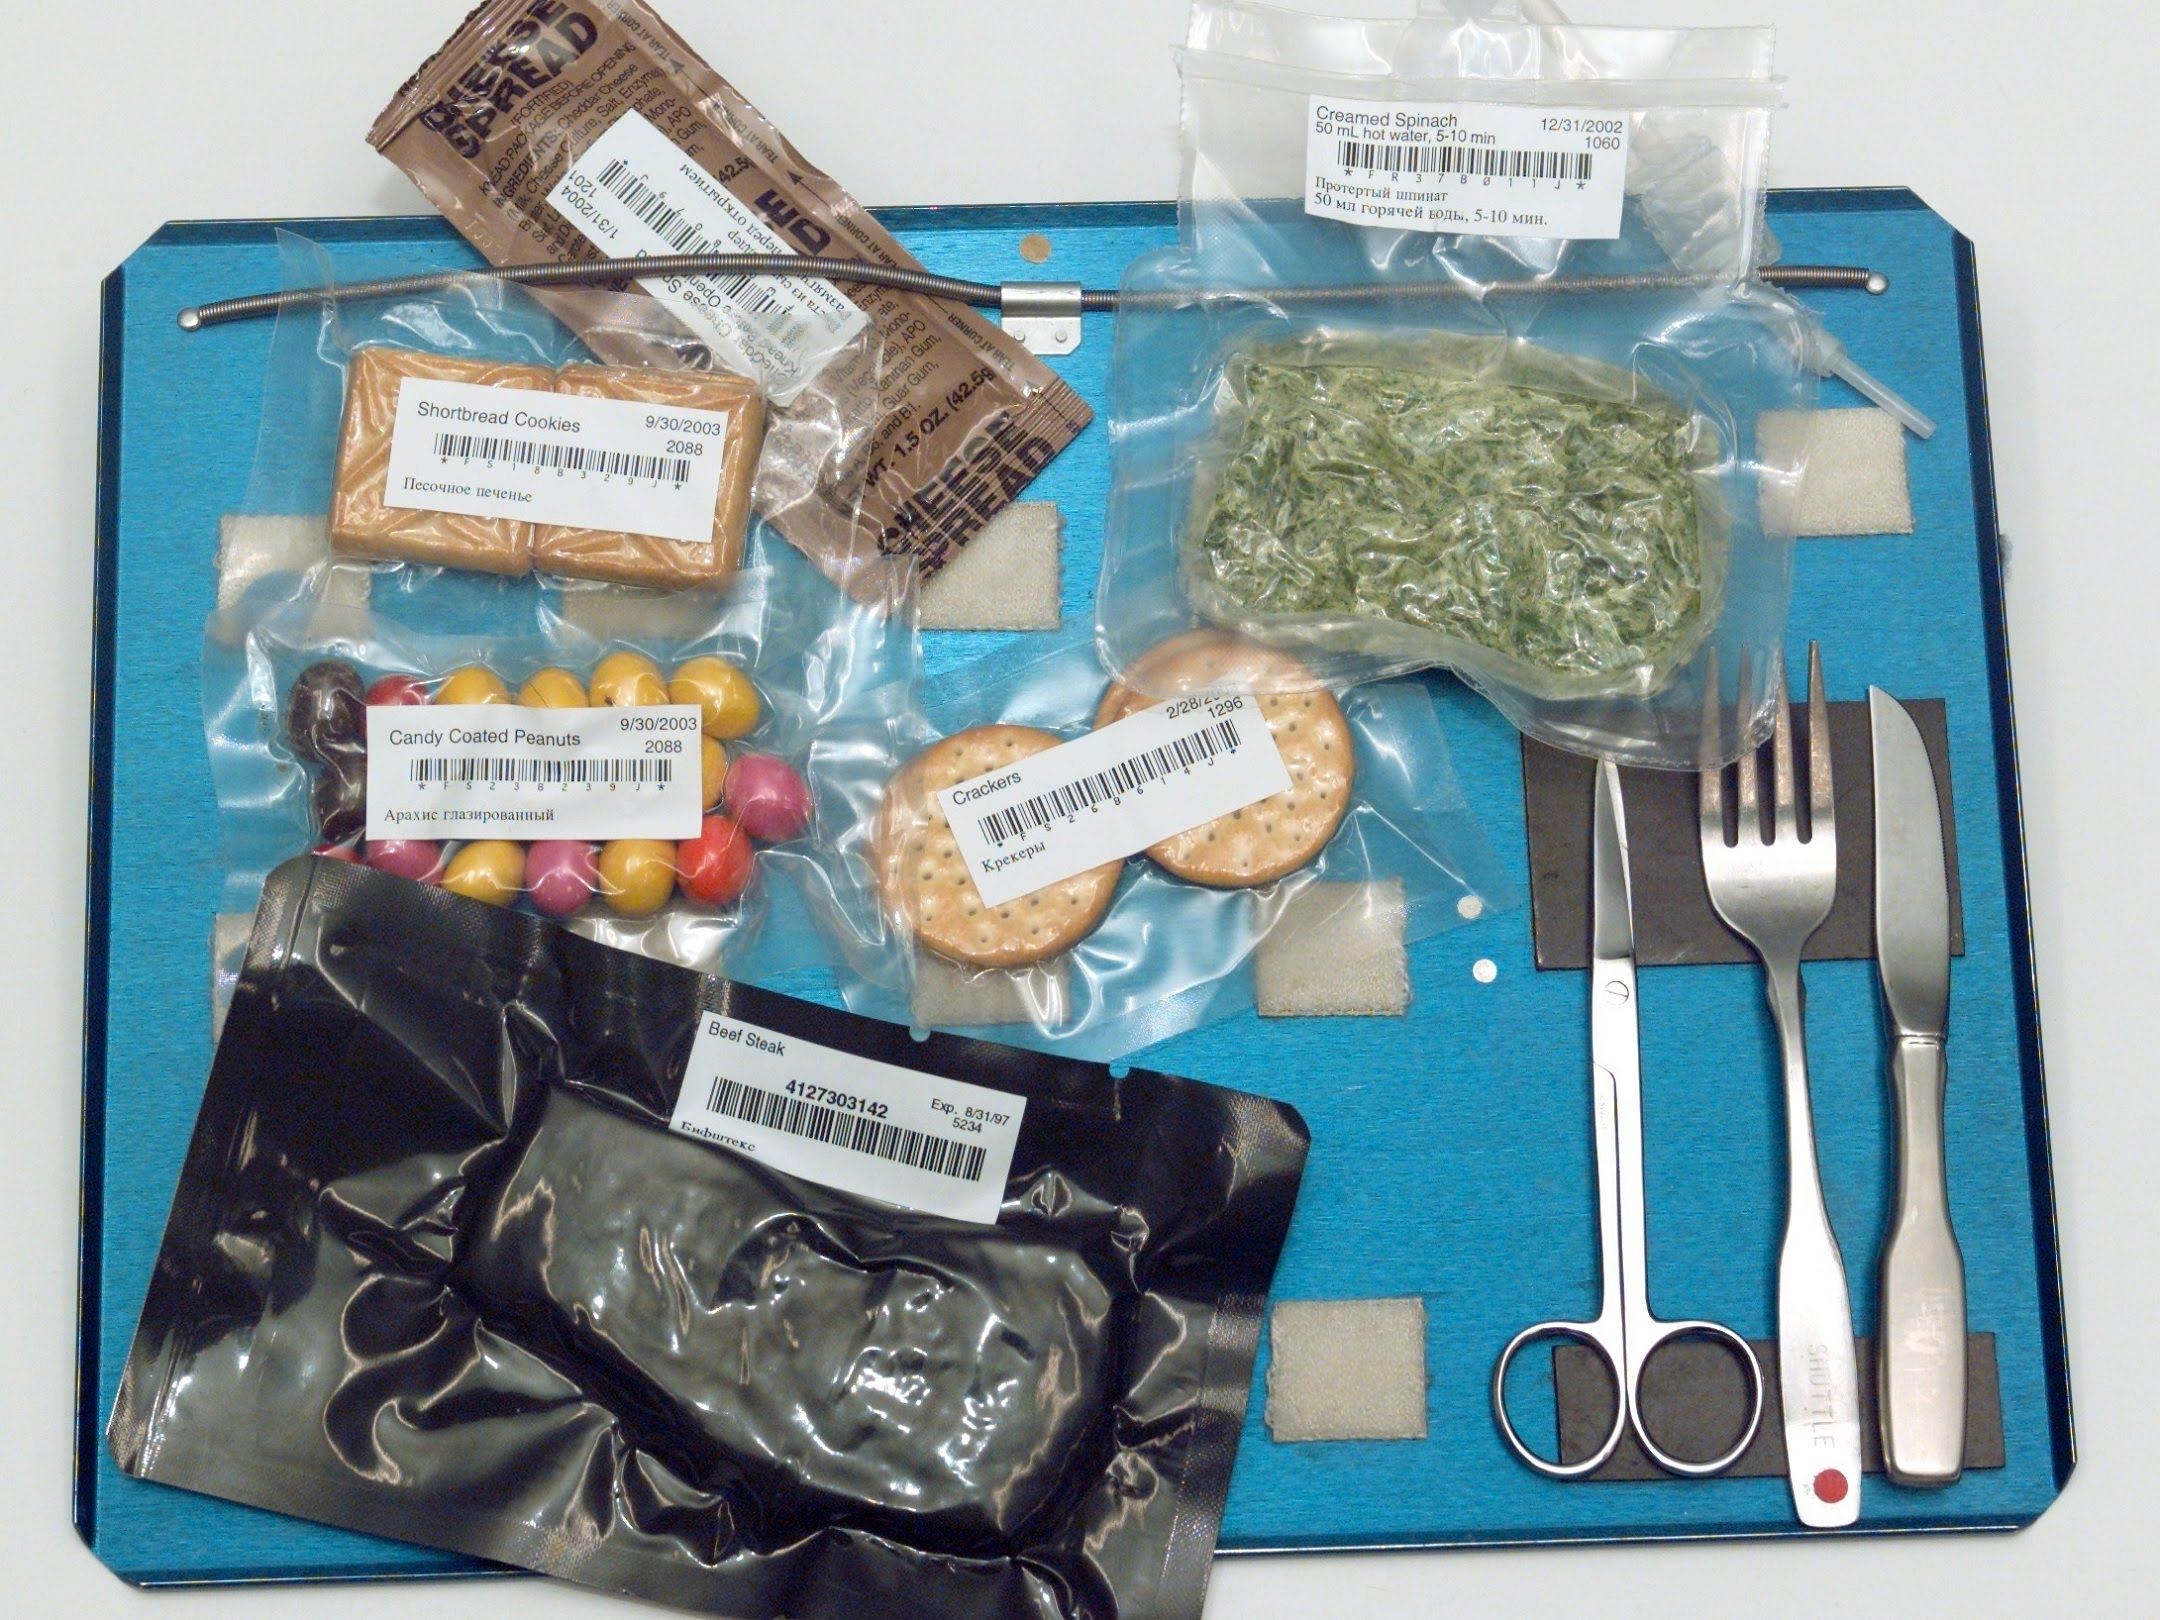 A typical freeze dried meal for an astronaut